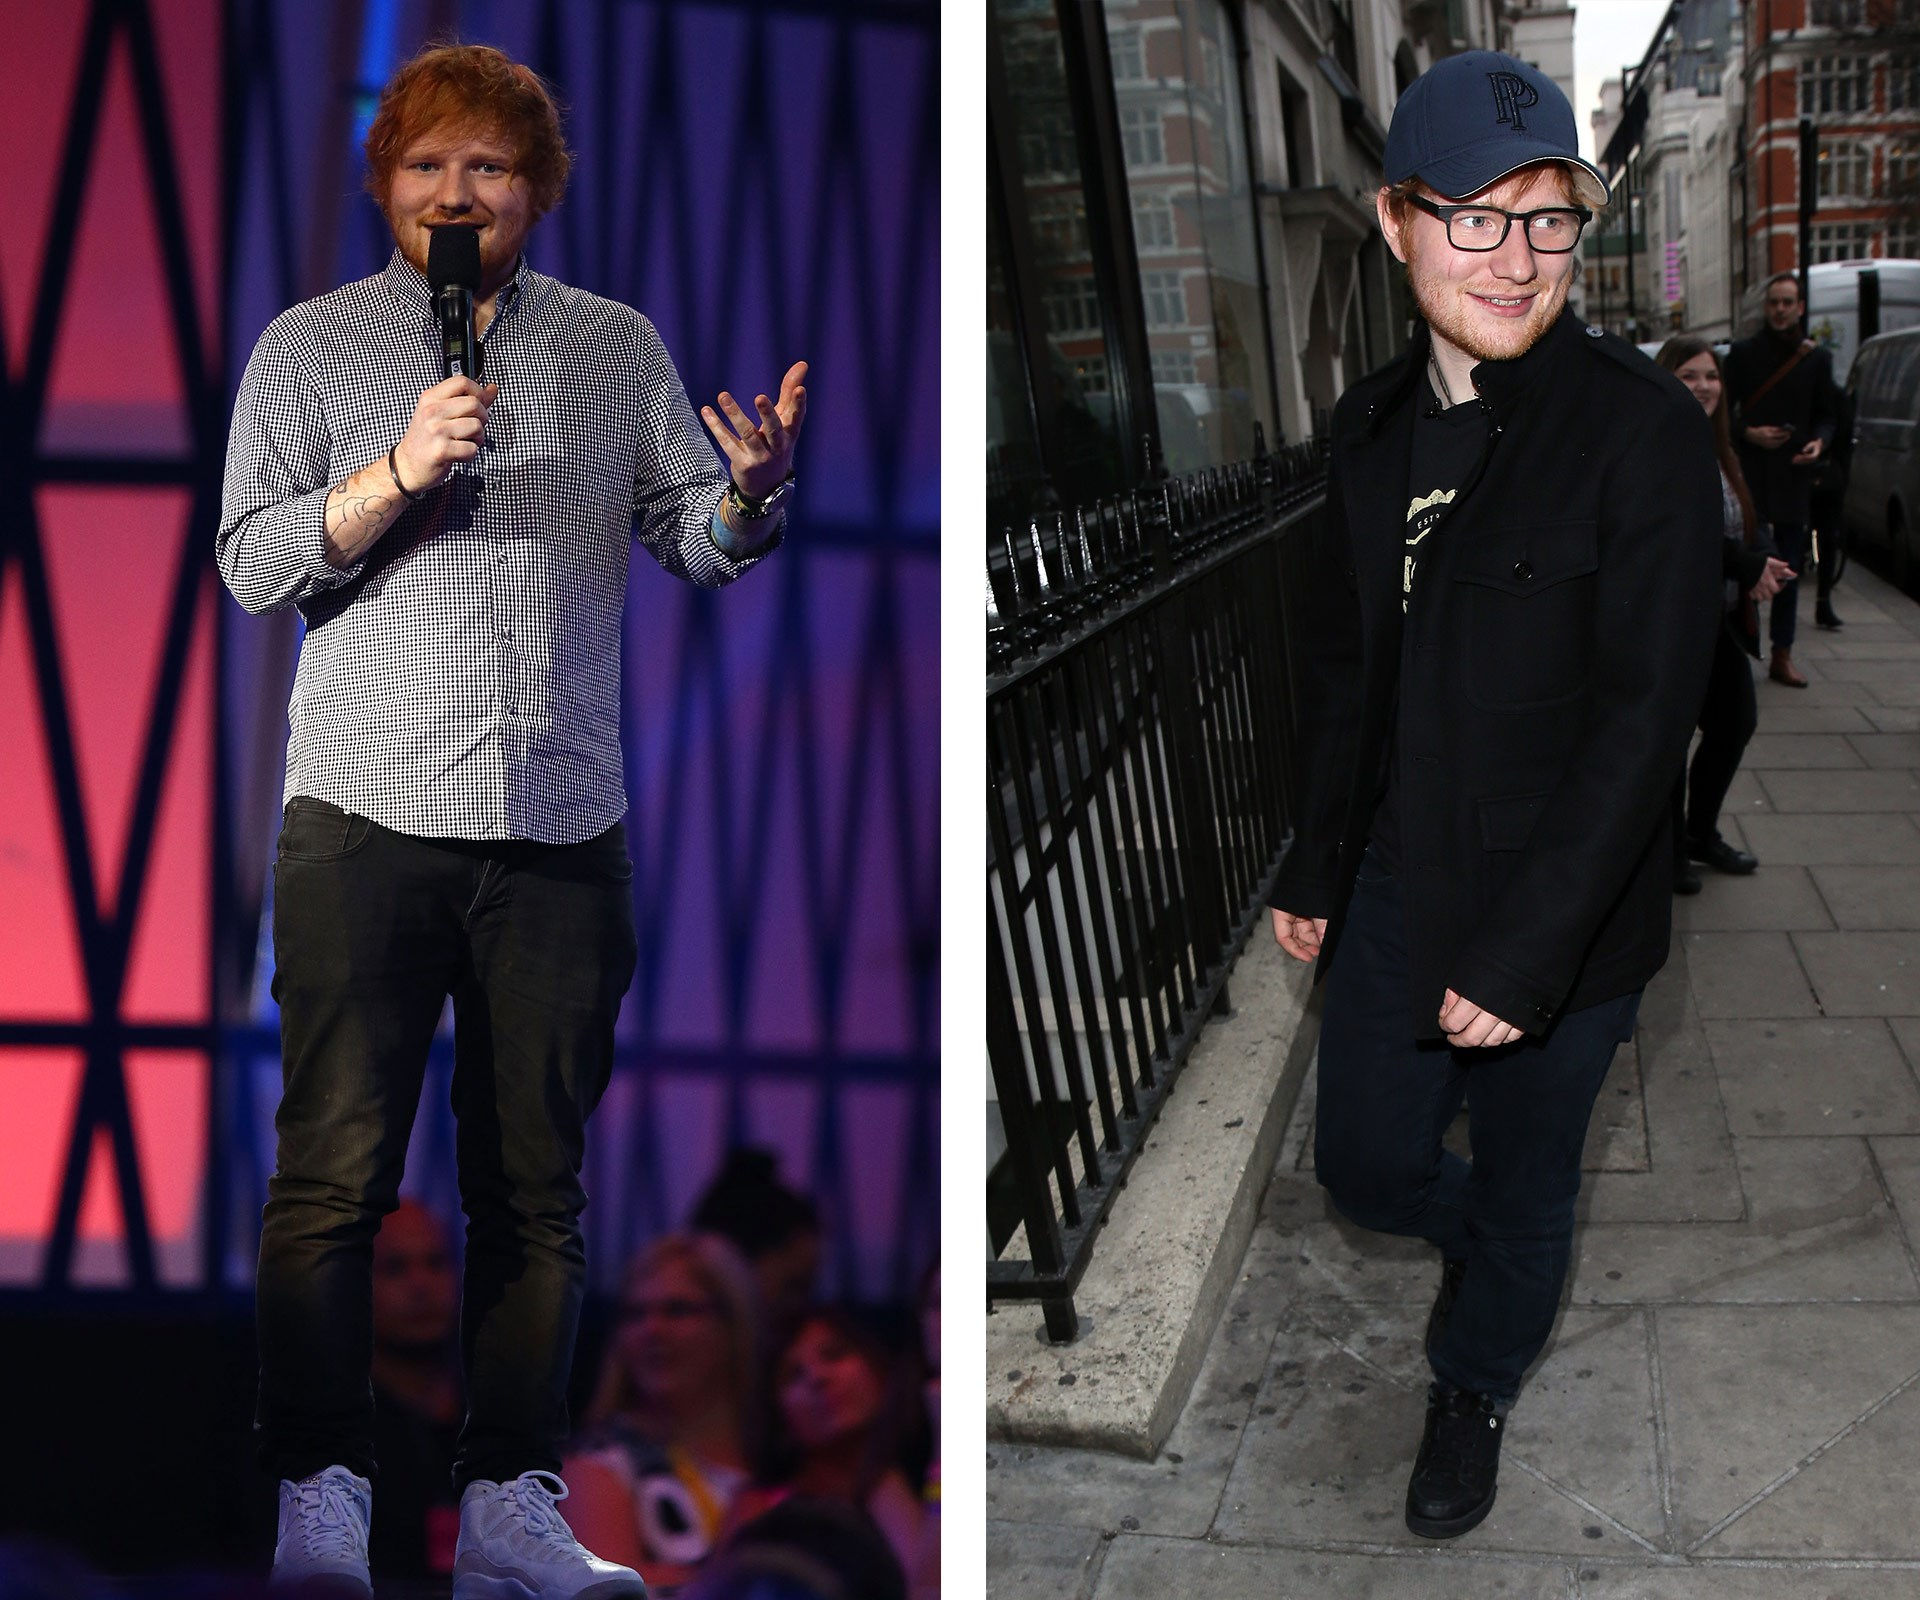 """Singer Ed Sheeran dropped a commendable 19kgs after he made the observation: """"All my clothes have shrunk."""" On how he did it, the 25-year-old ginger says, """"I did ten minutes a day without fail — intervals of 30 seconds sprinting and 30 jogging."""""""